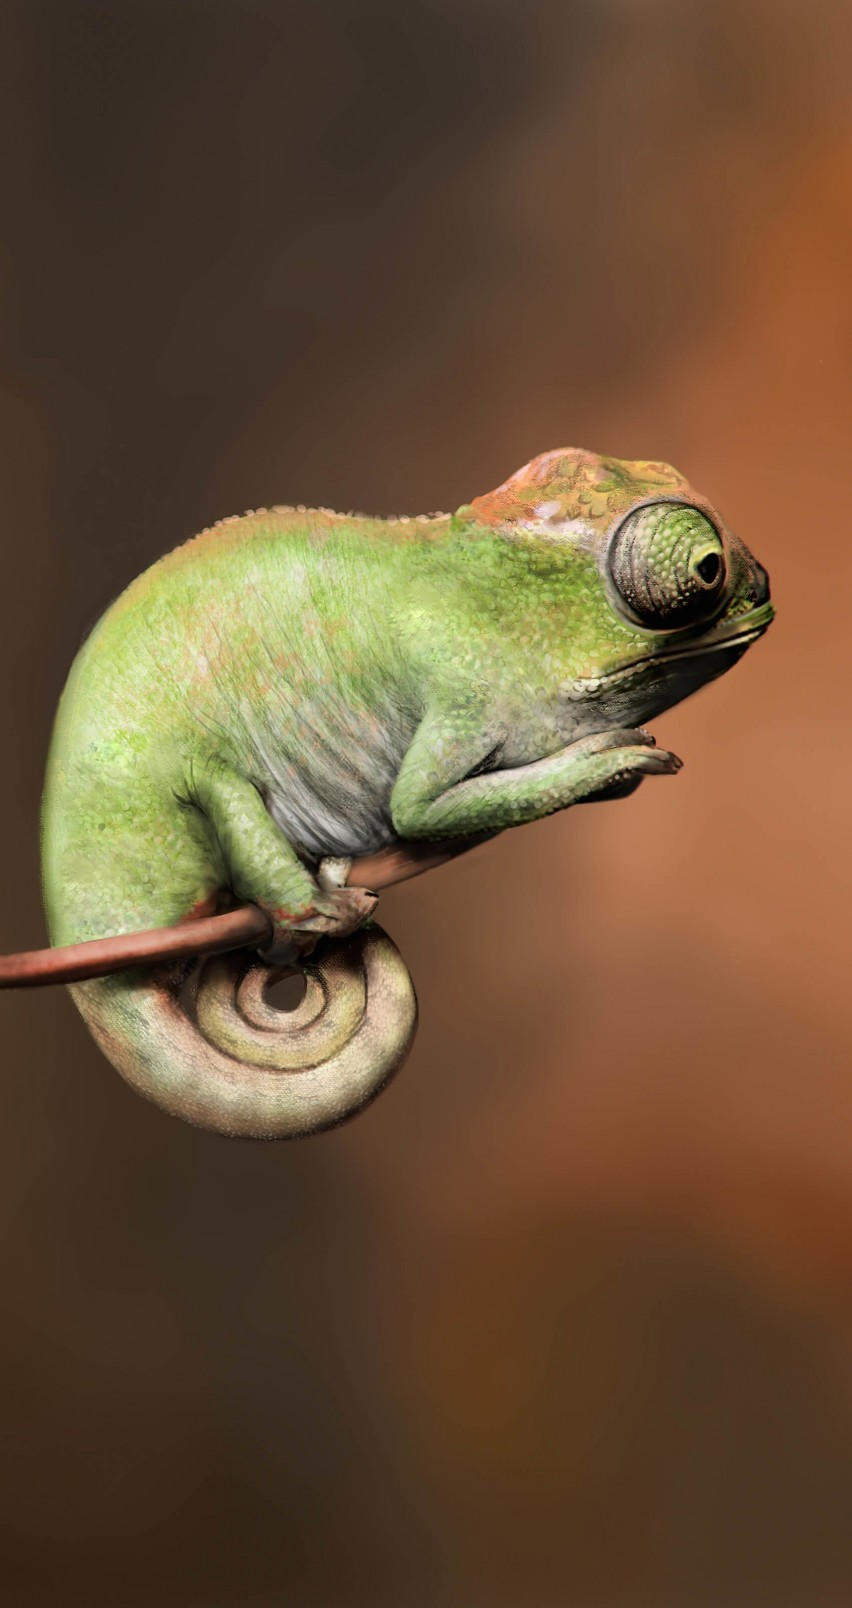 Baby Chameleon Perching On a Twisted Branch Wallpaper for Apple iPhone 6 / 6s